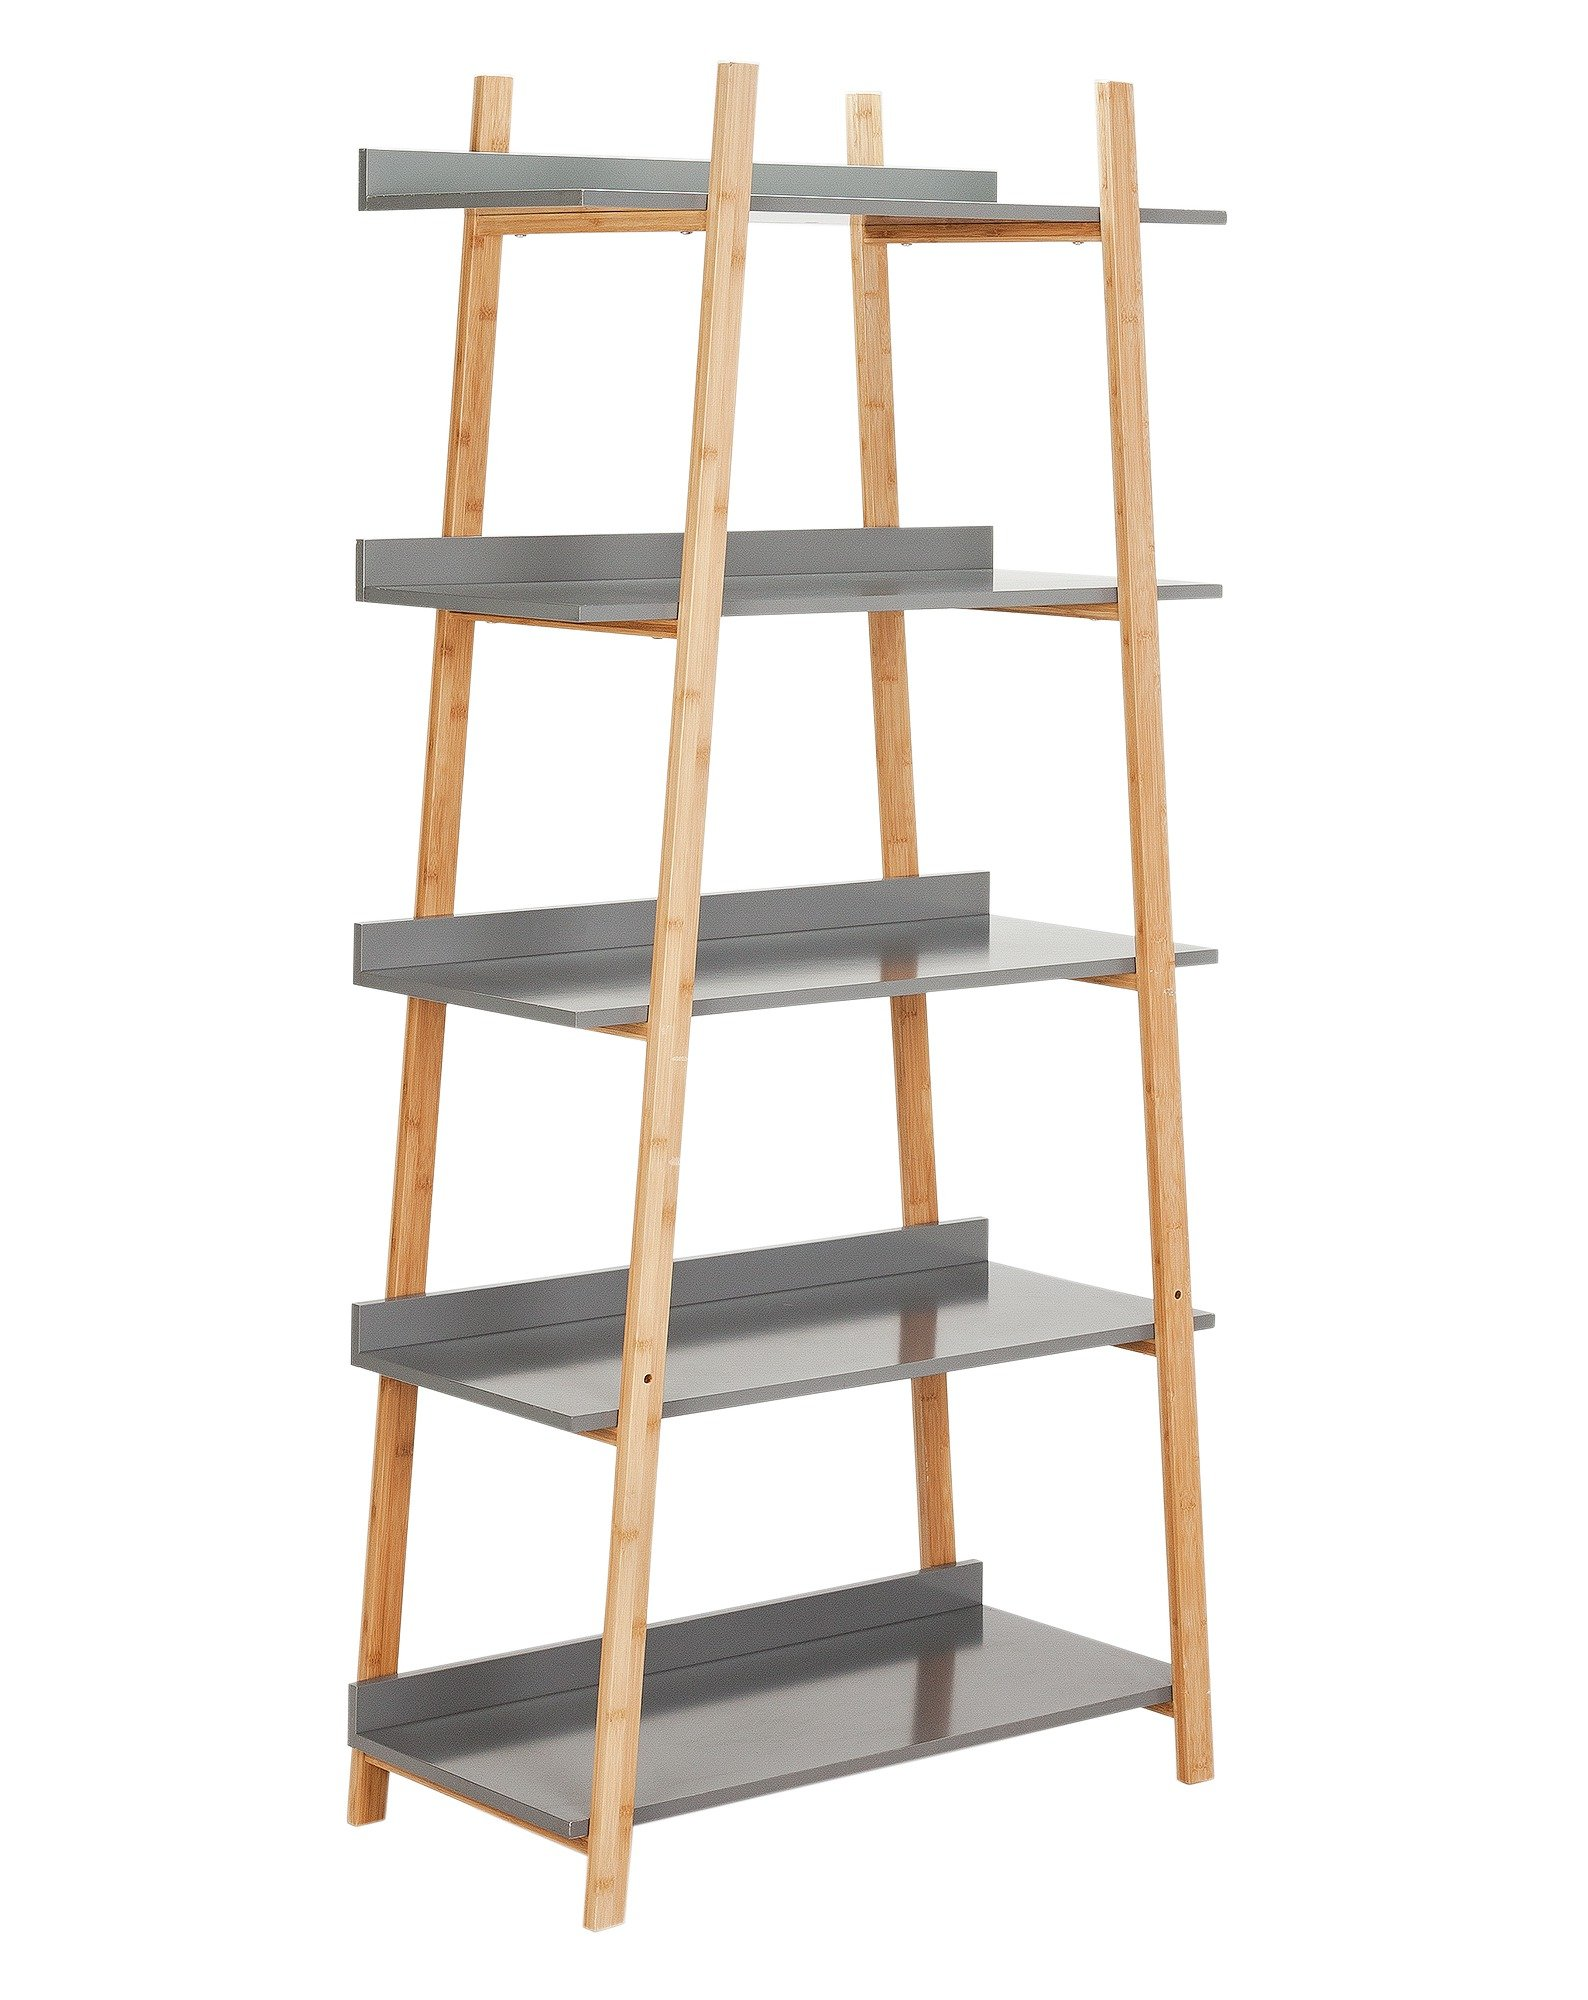 Argos Home Skanda 5 Tier Bamboo Shelving Unit - Grey